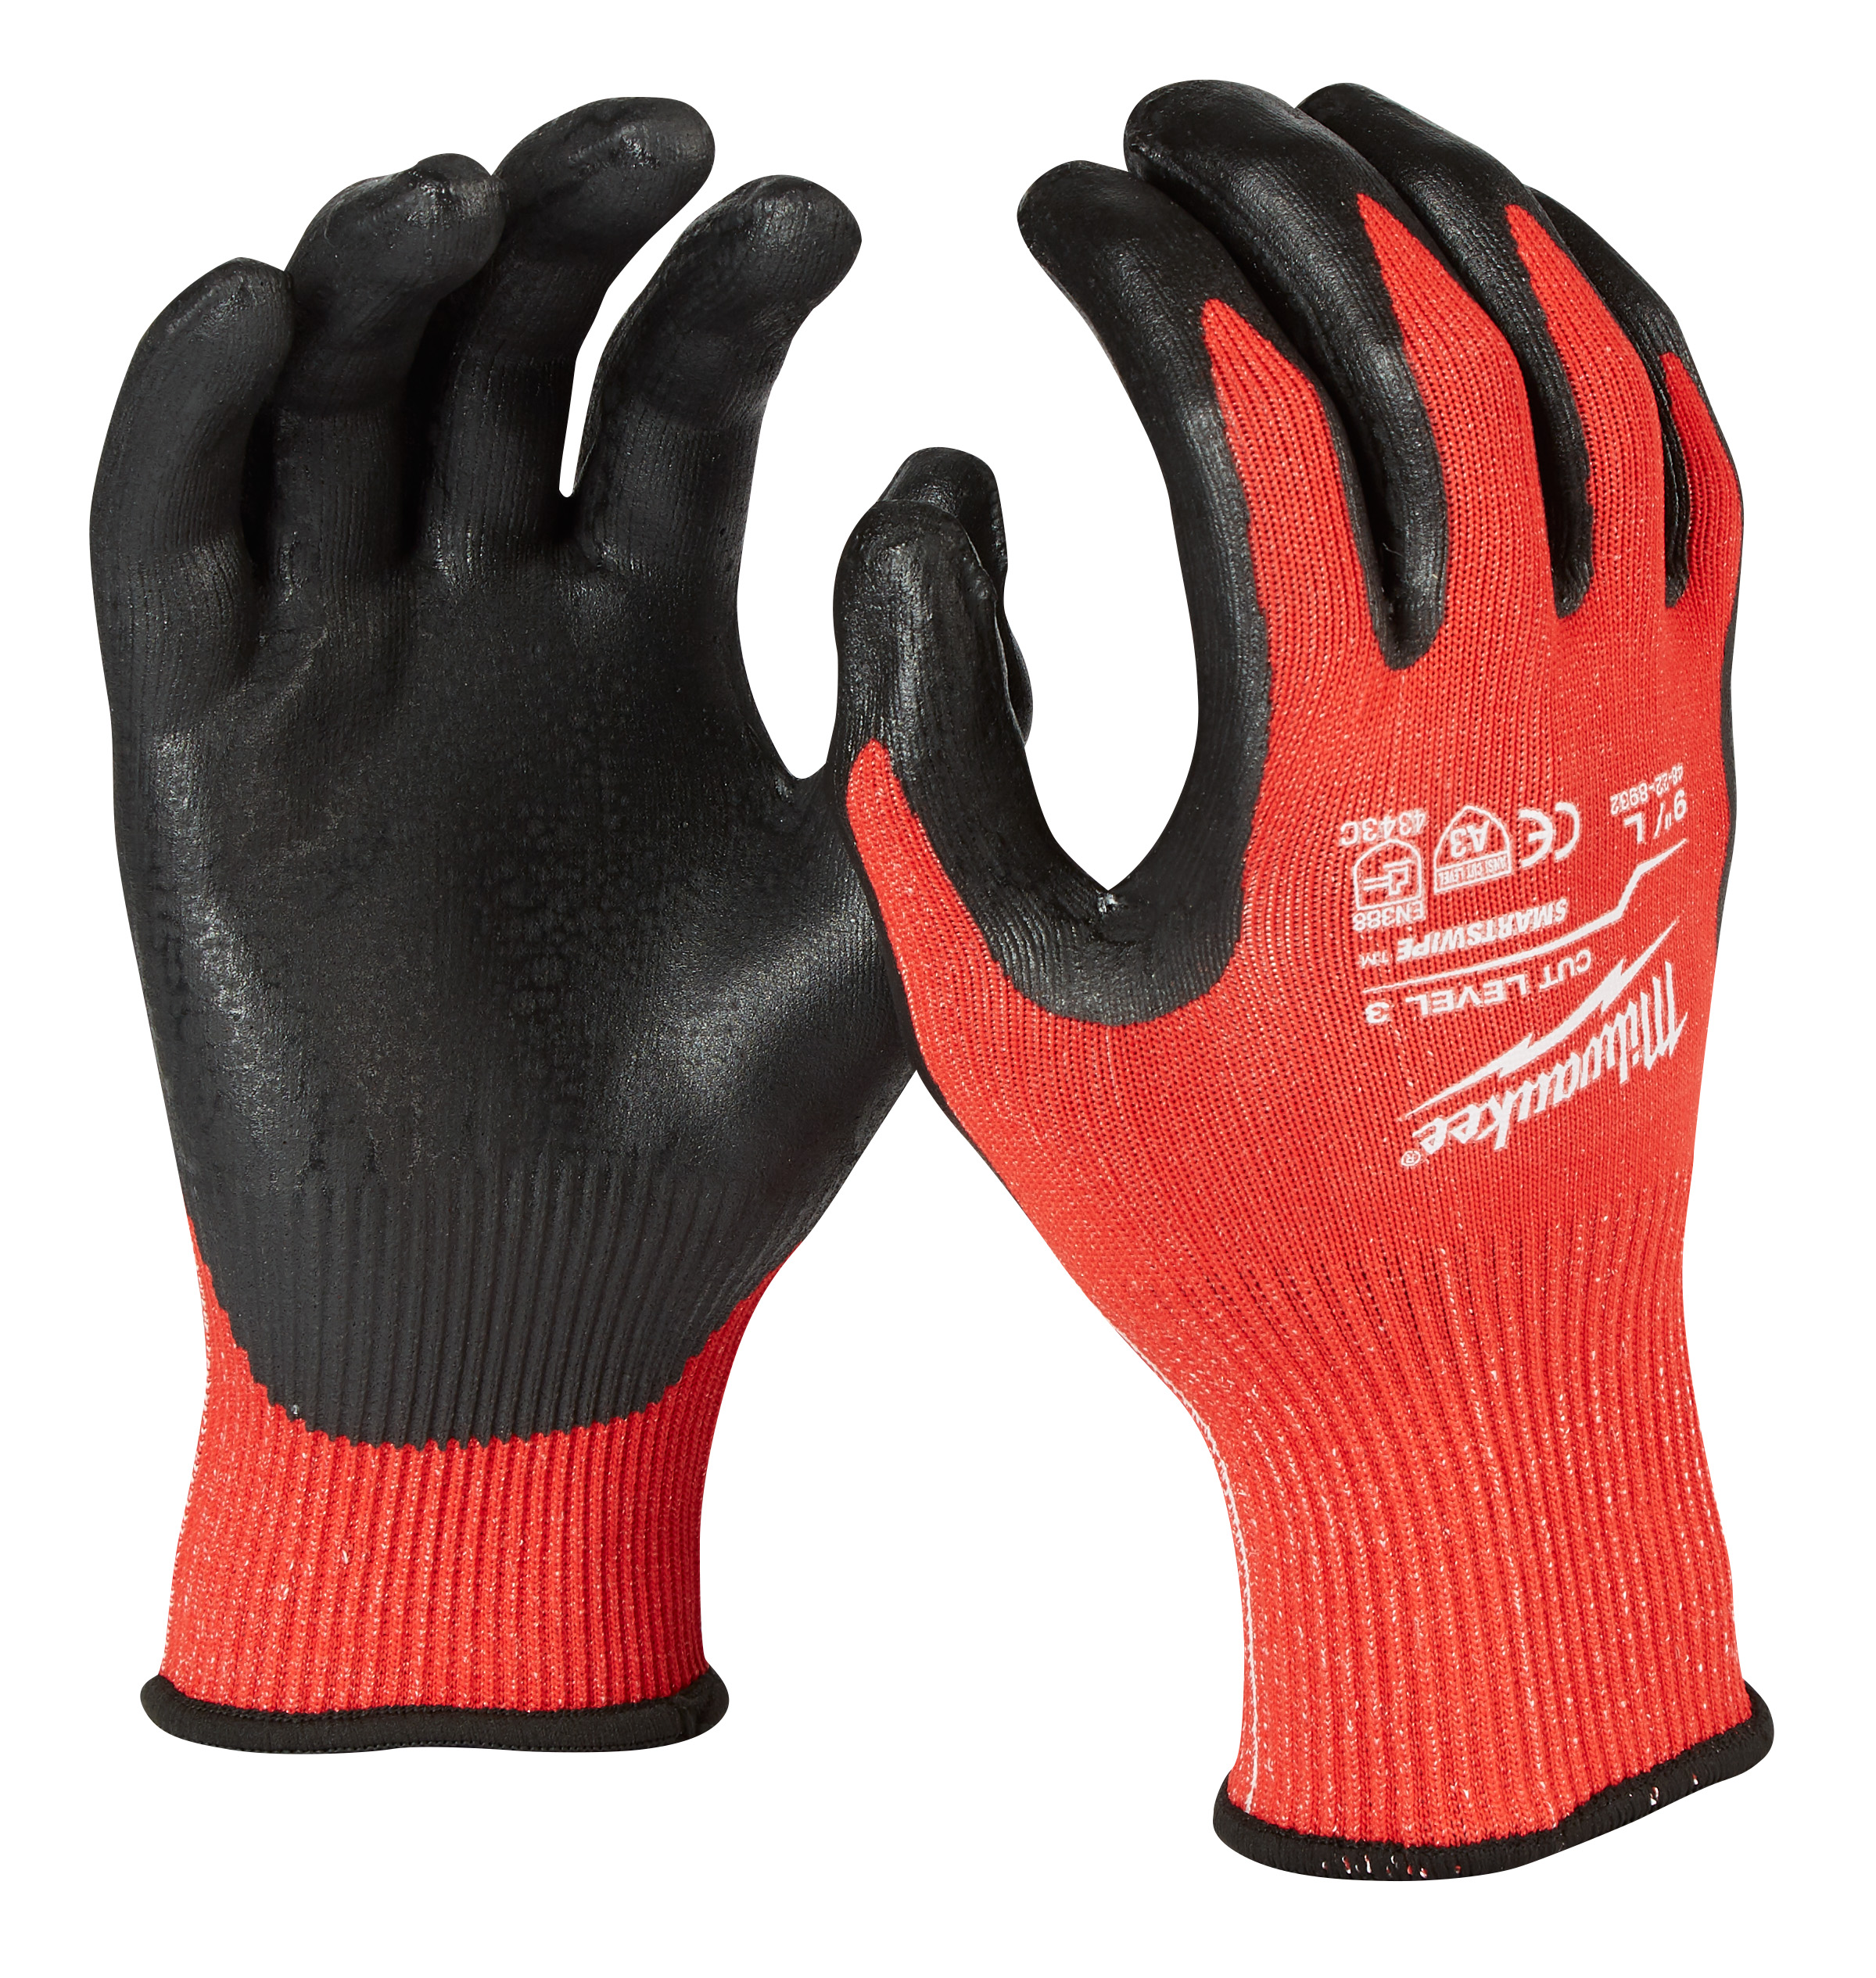 MILWAUKEE 48-22-8932 (6) CUT 3 NITRILE GLOVES - L